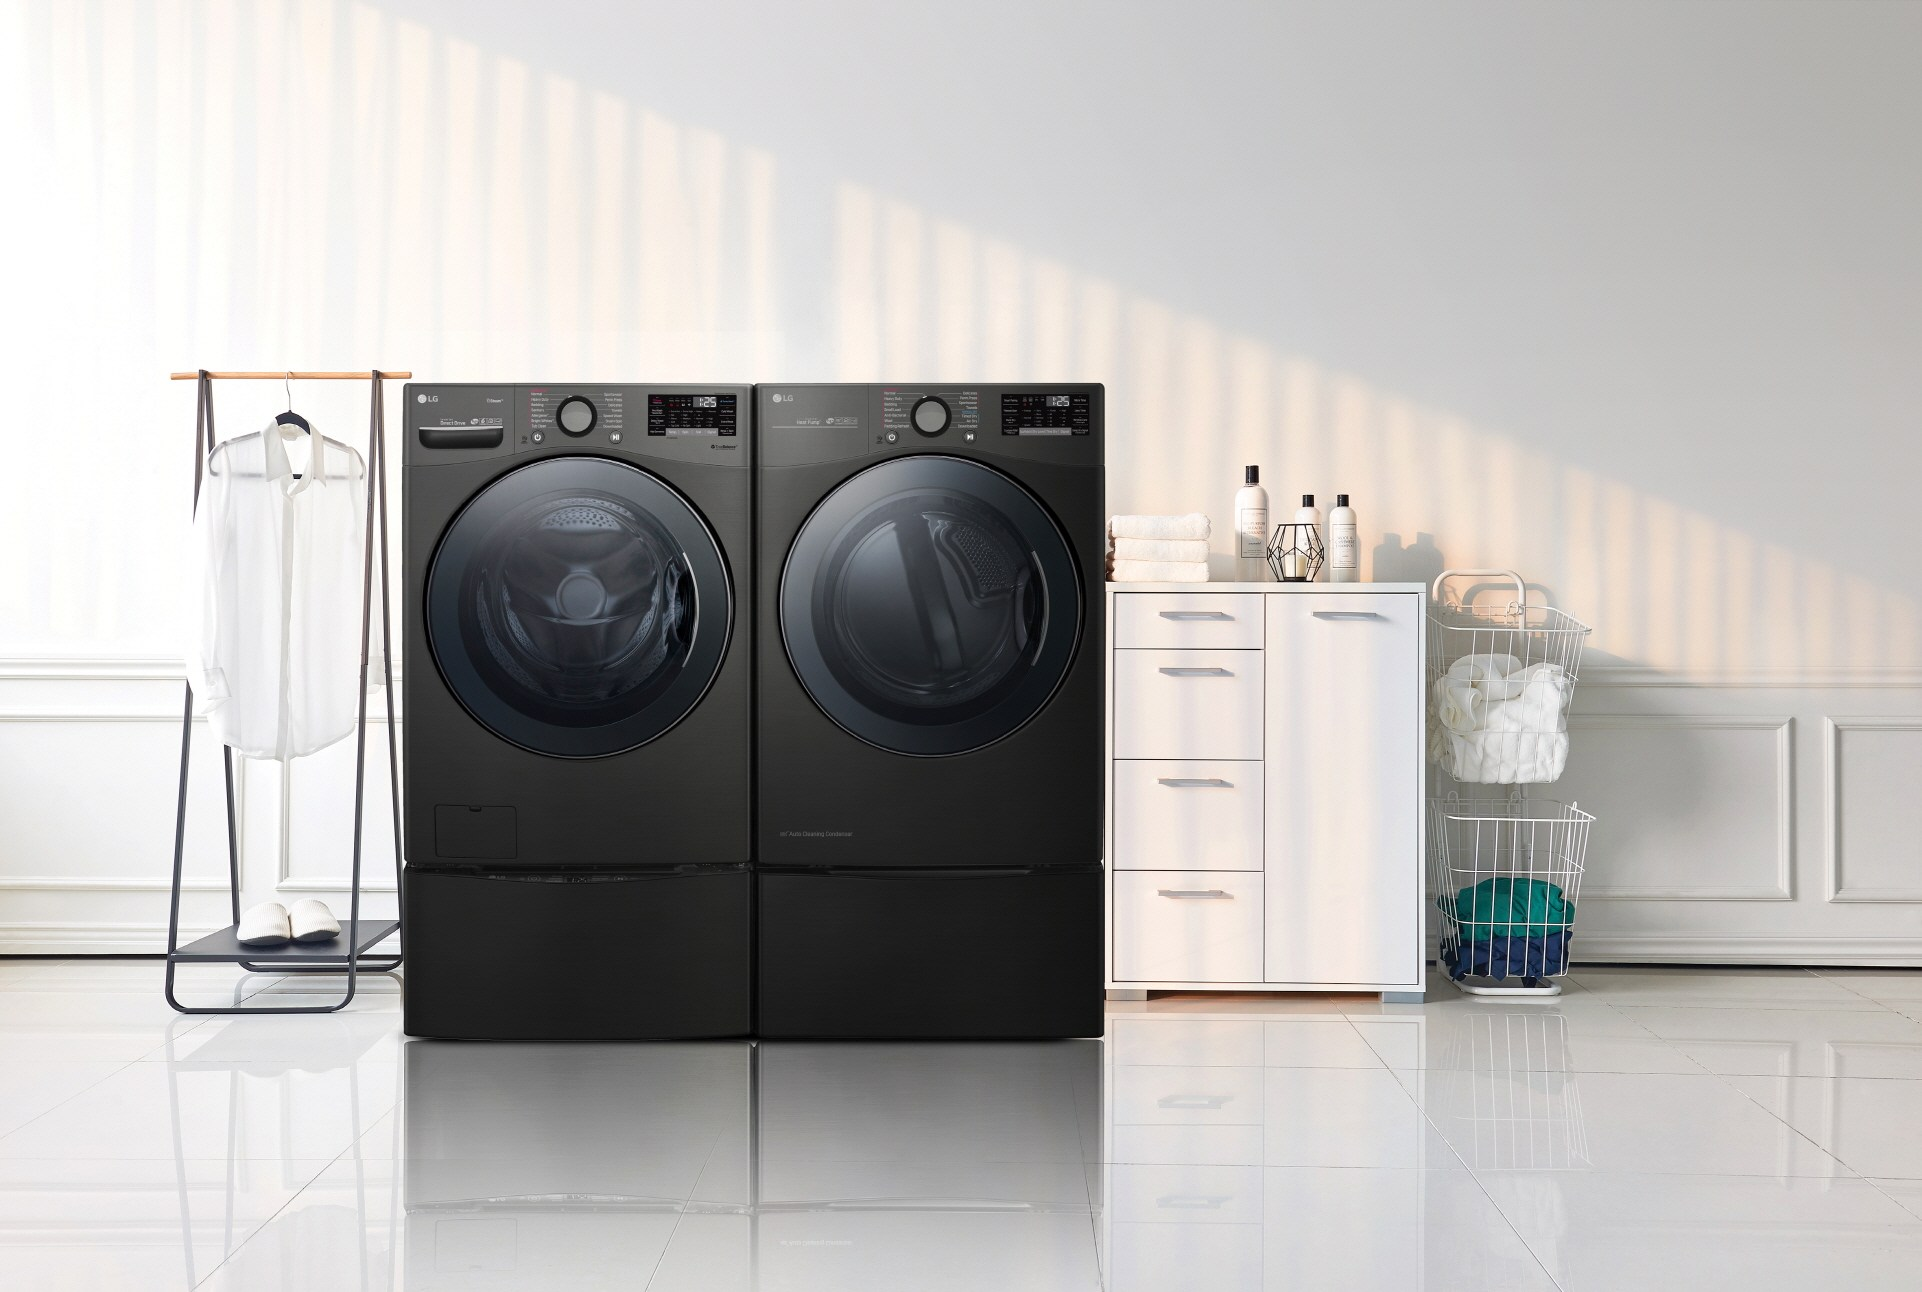 LG TWINWash washer and dryer CES 2019